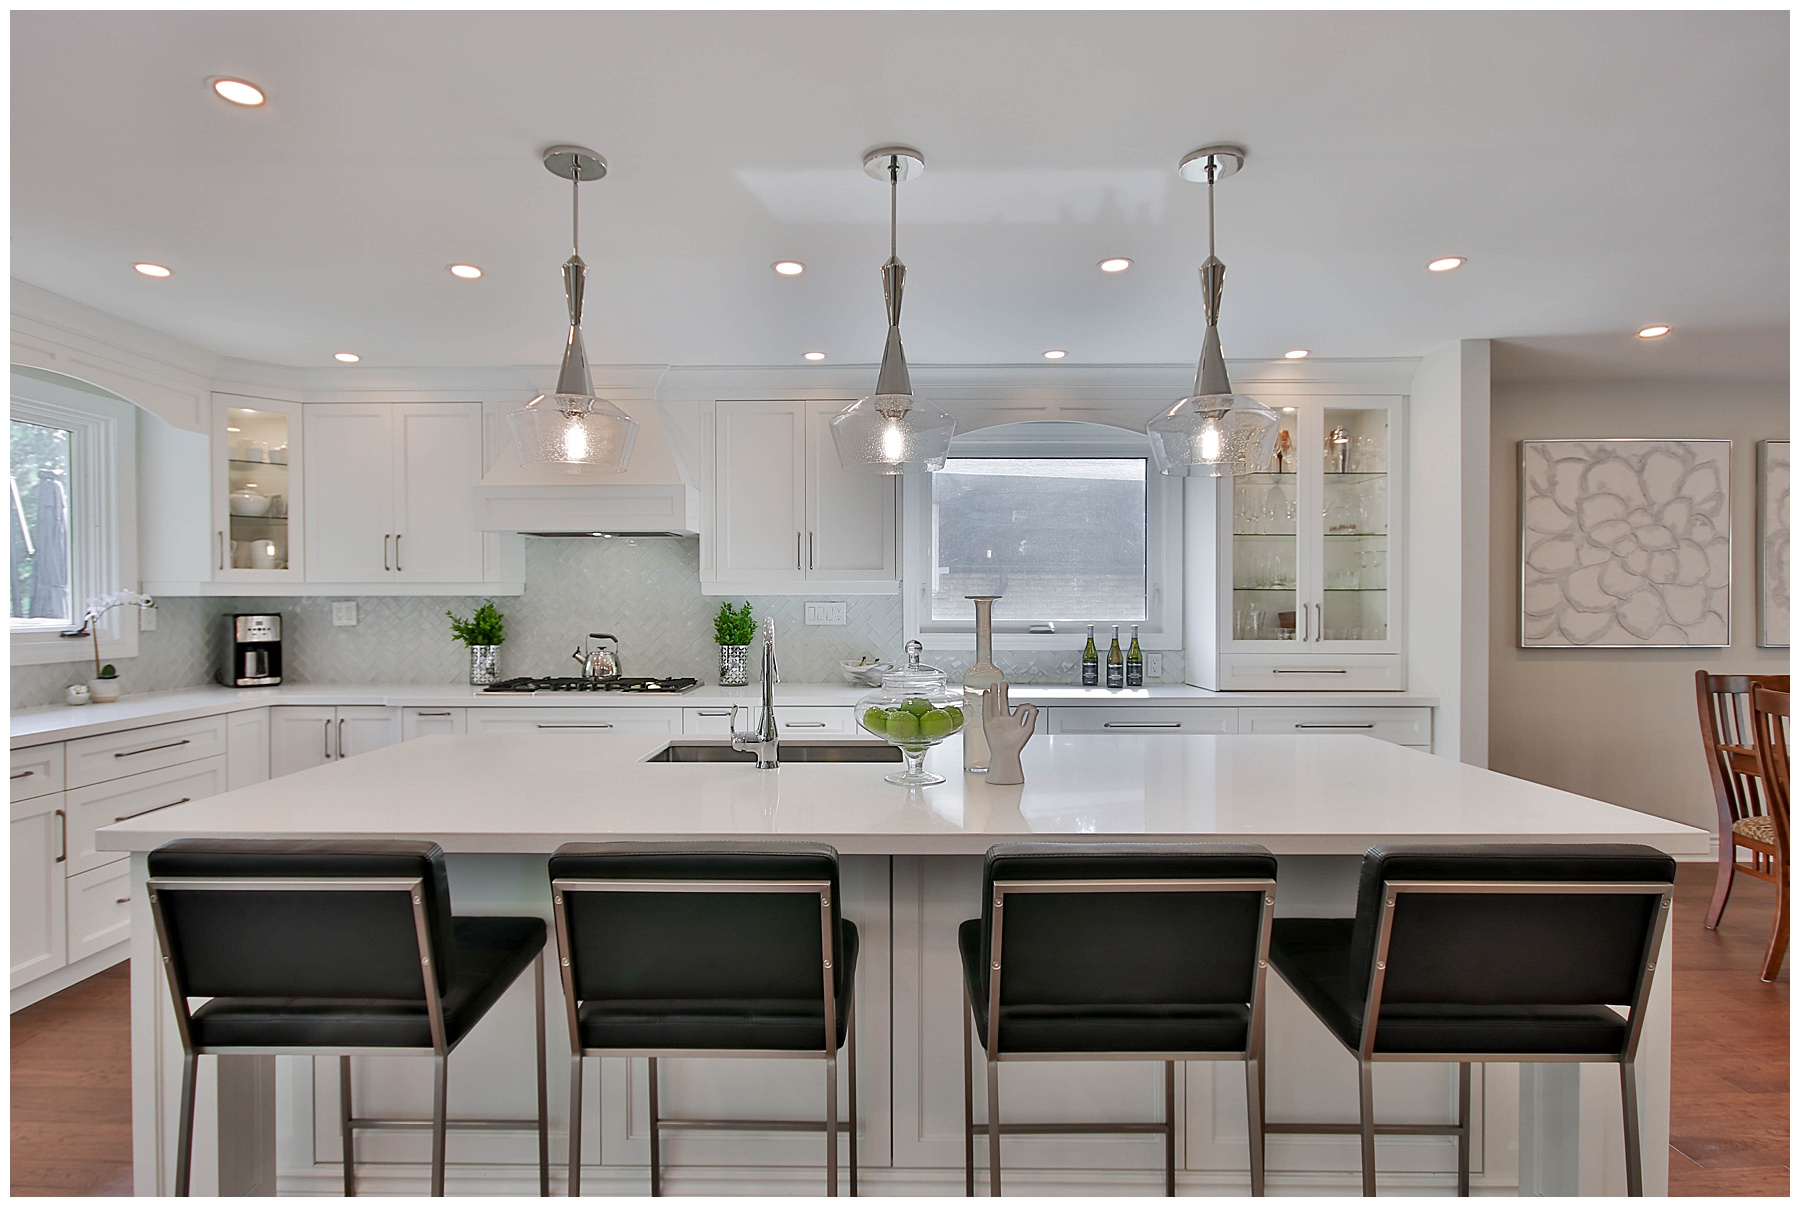 A beautiful open concept kitchen with large island, white cabinets, and black seating